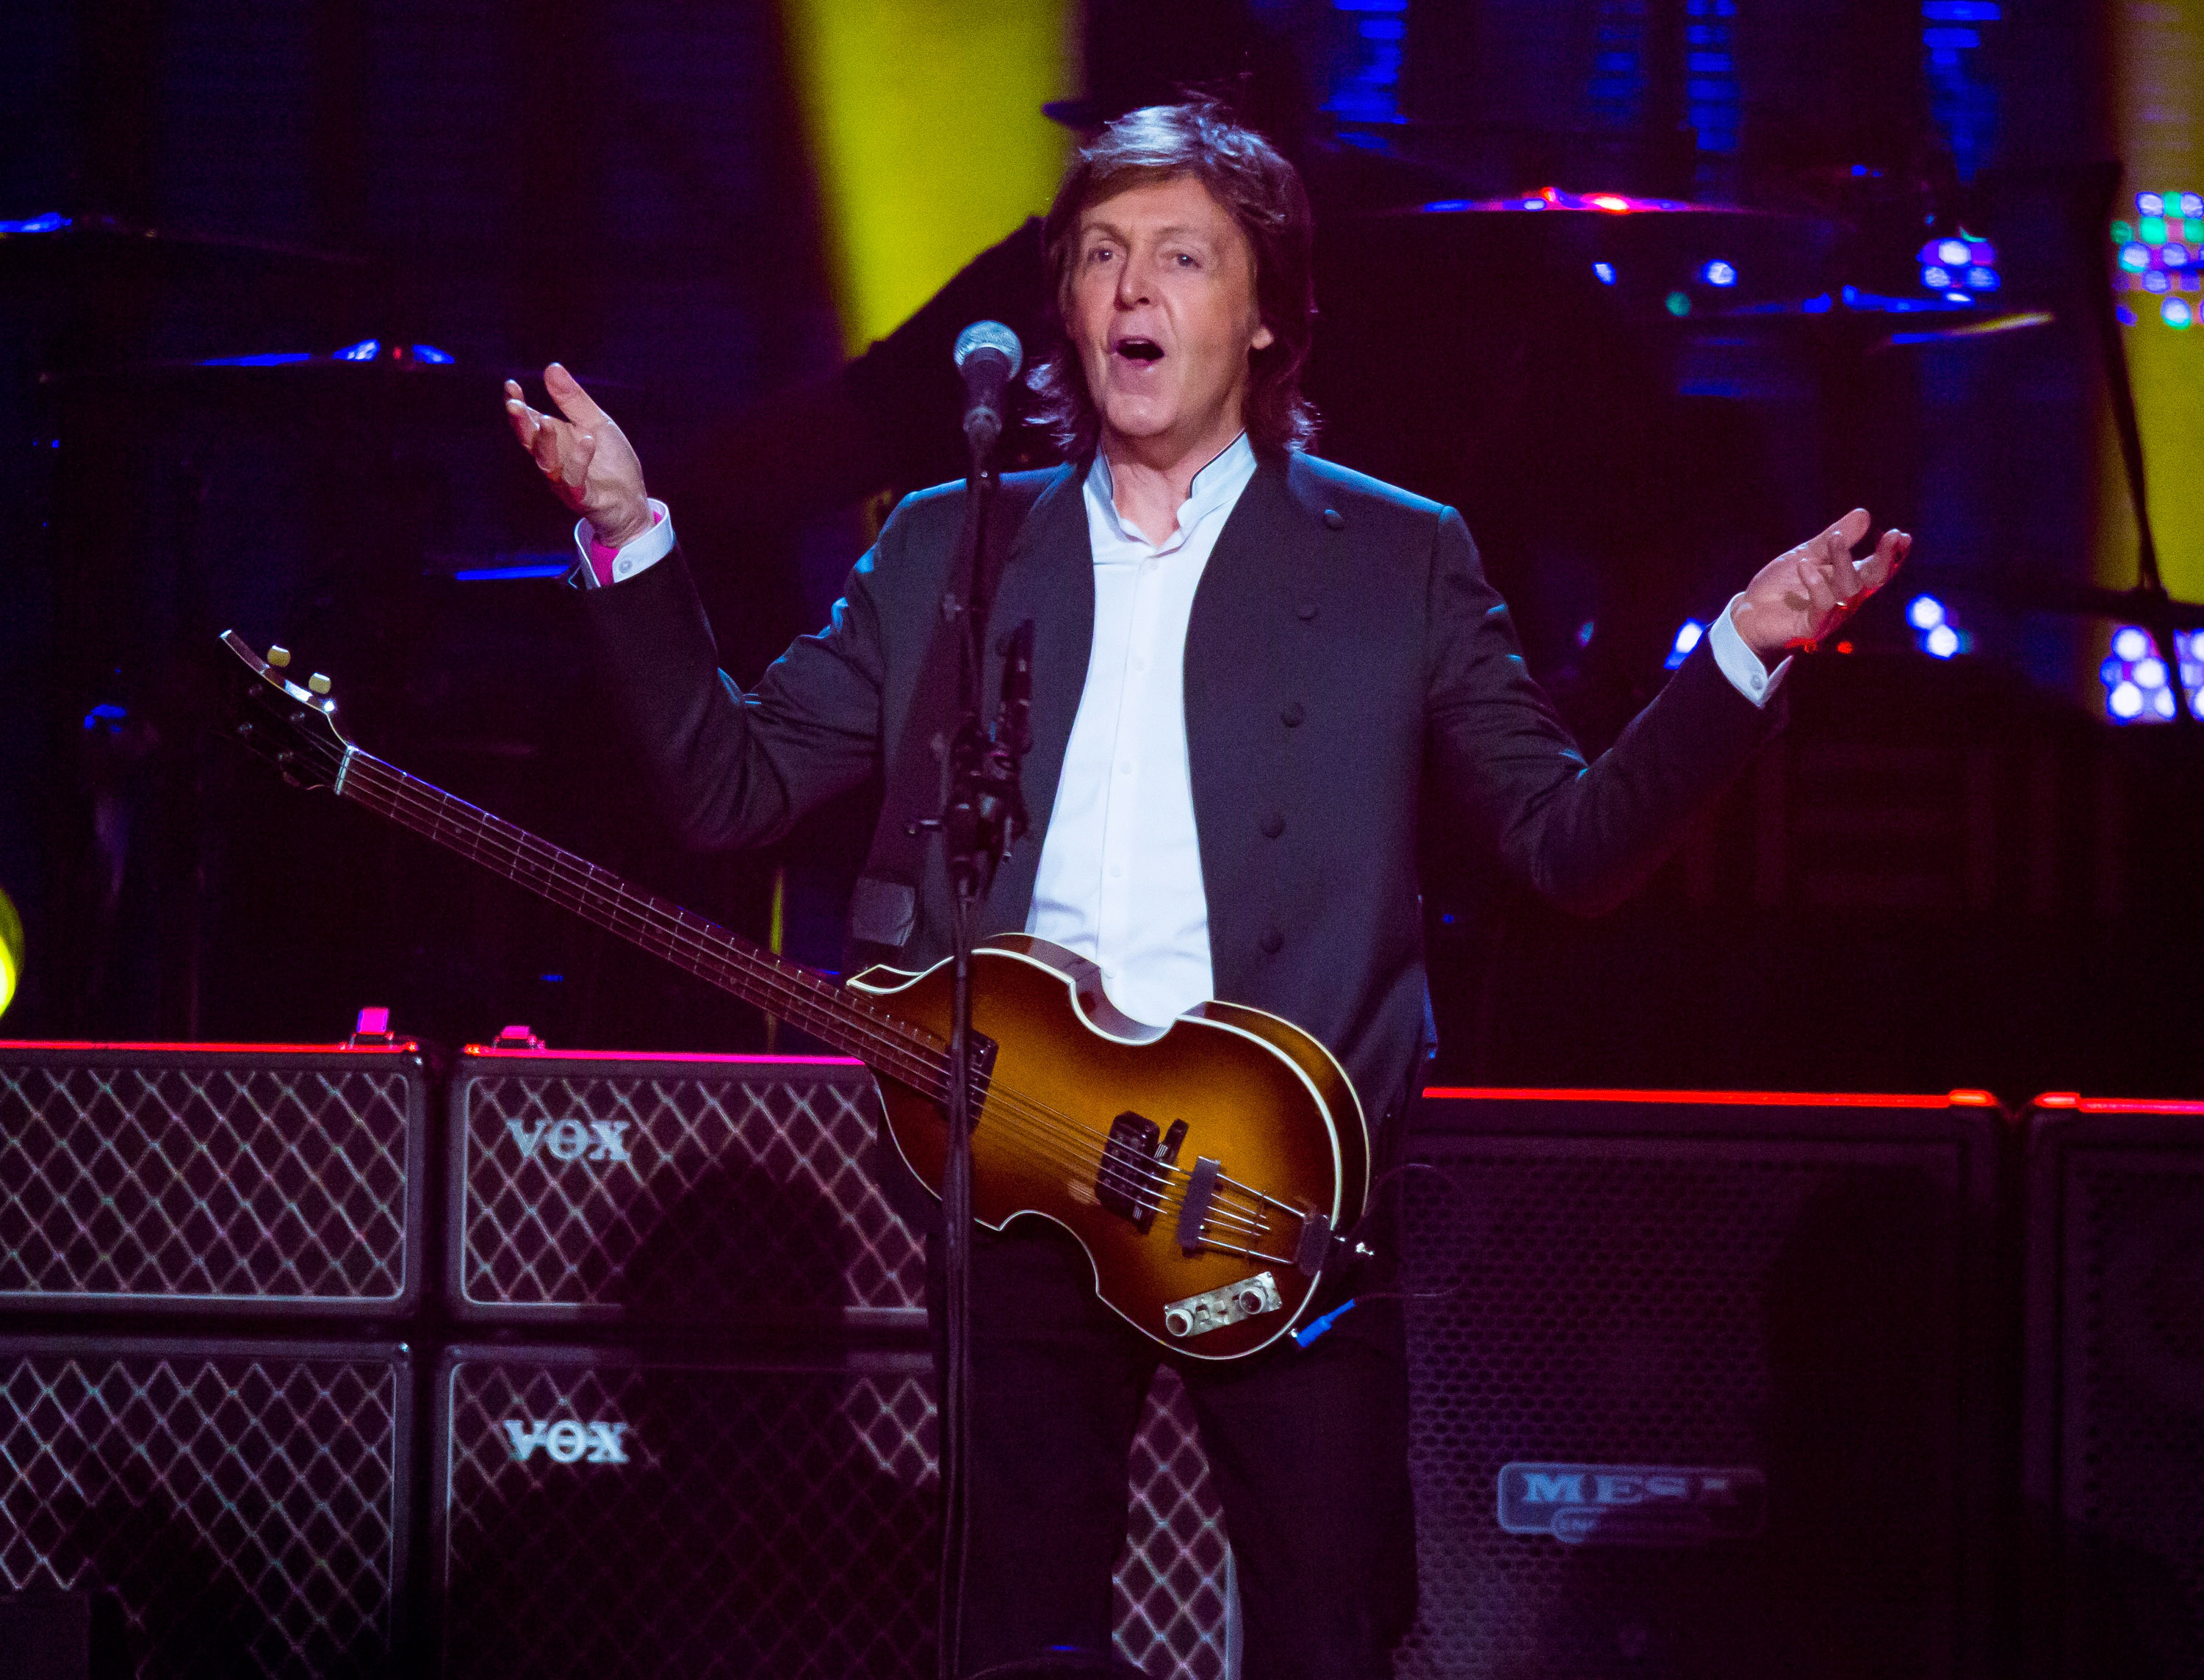 Sir Paul McCartney performs during the U.S. 'Out There' tour at Joe Louis Arena on October 21, 2015 in Detroit, Michigan.